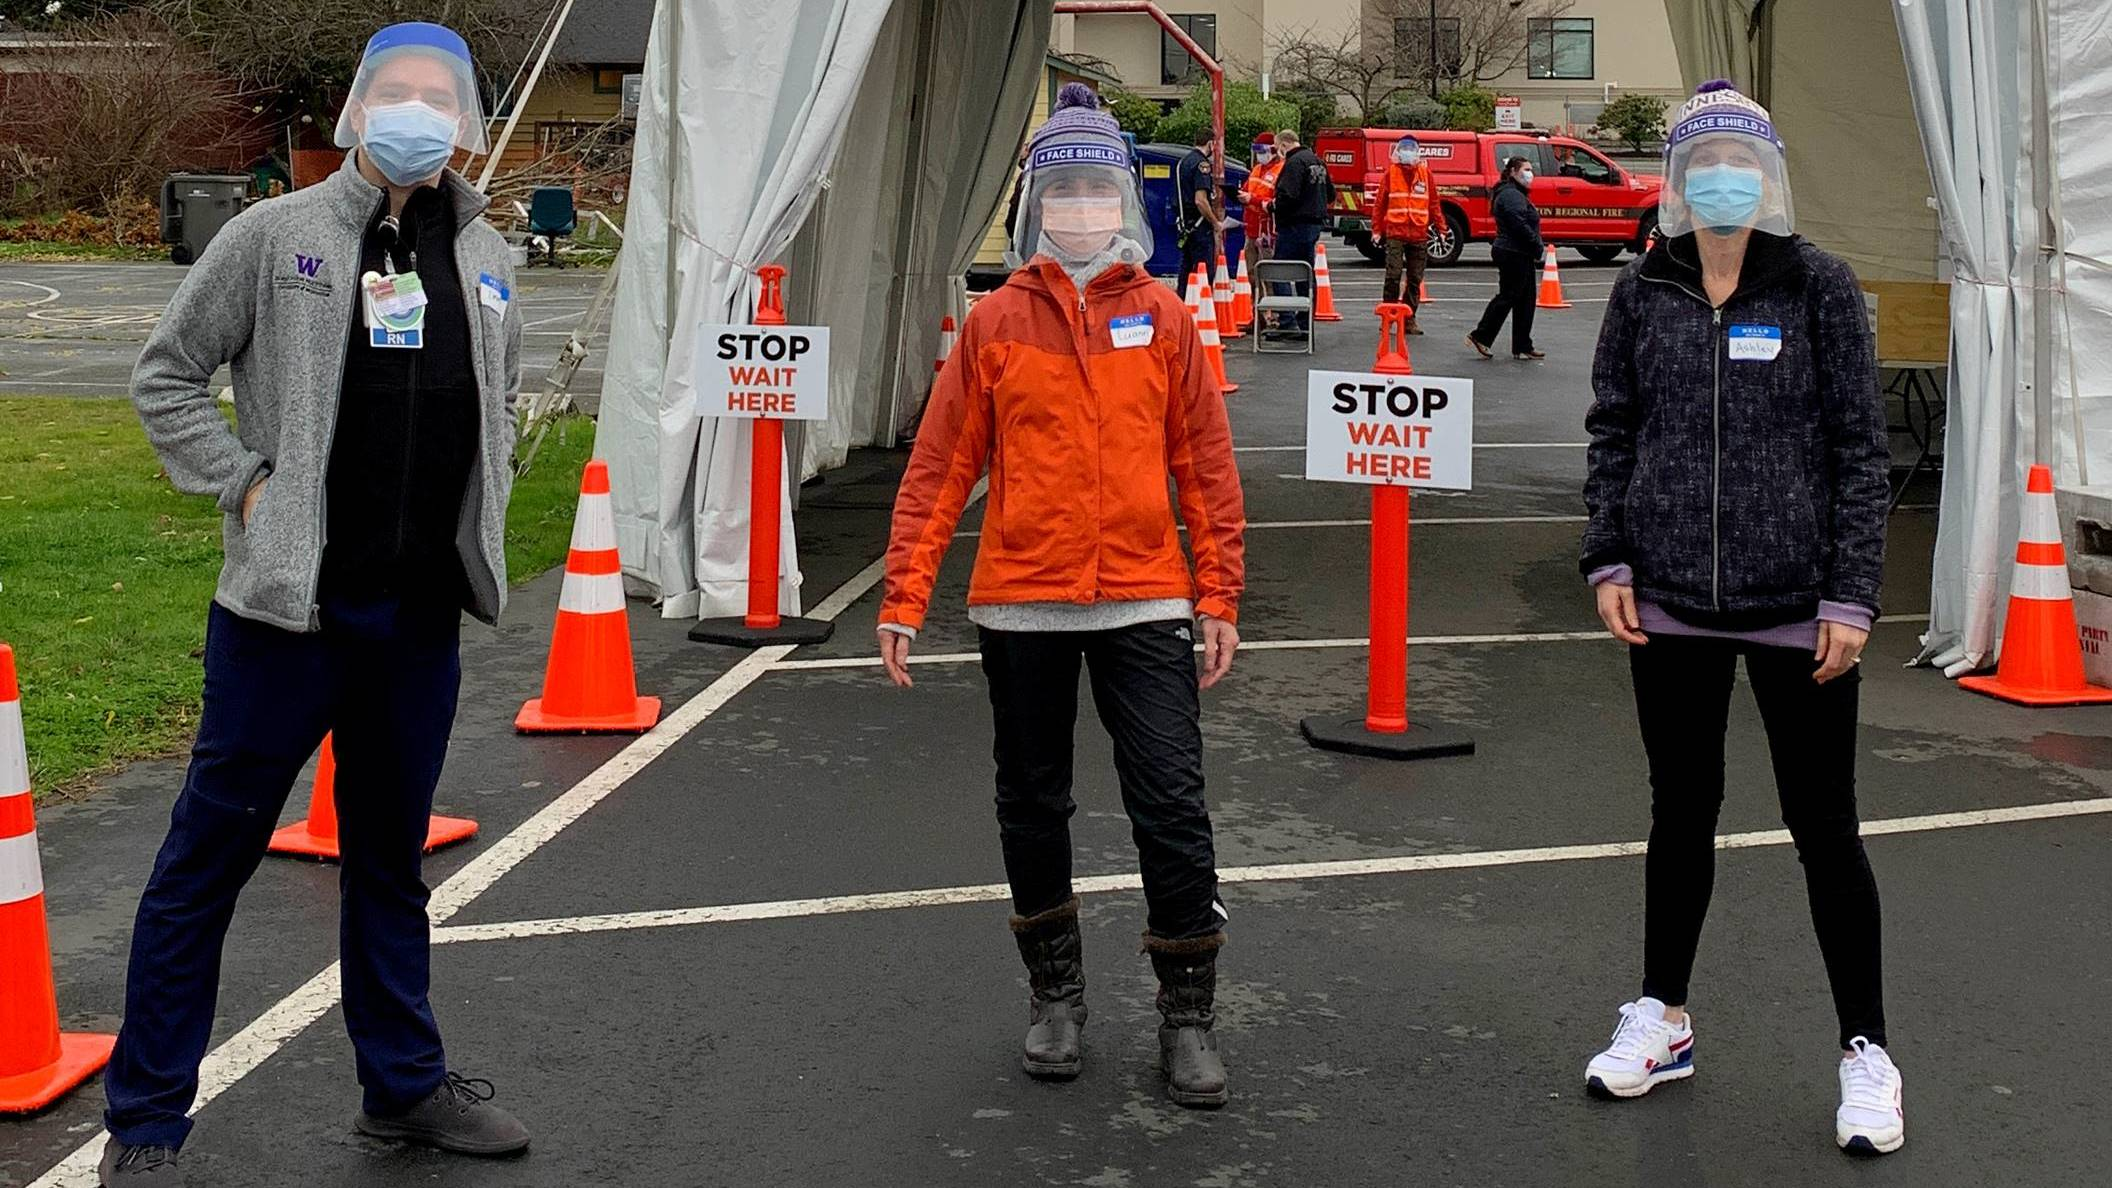 Three UW SChool of Nursing Students wearing face shields and mask at a vaccination site